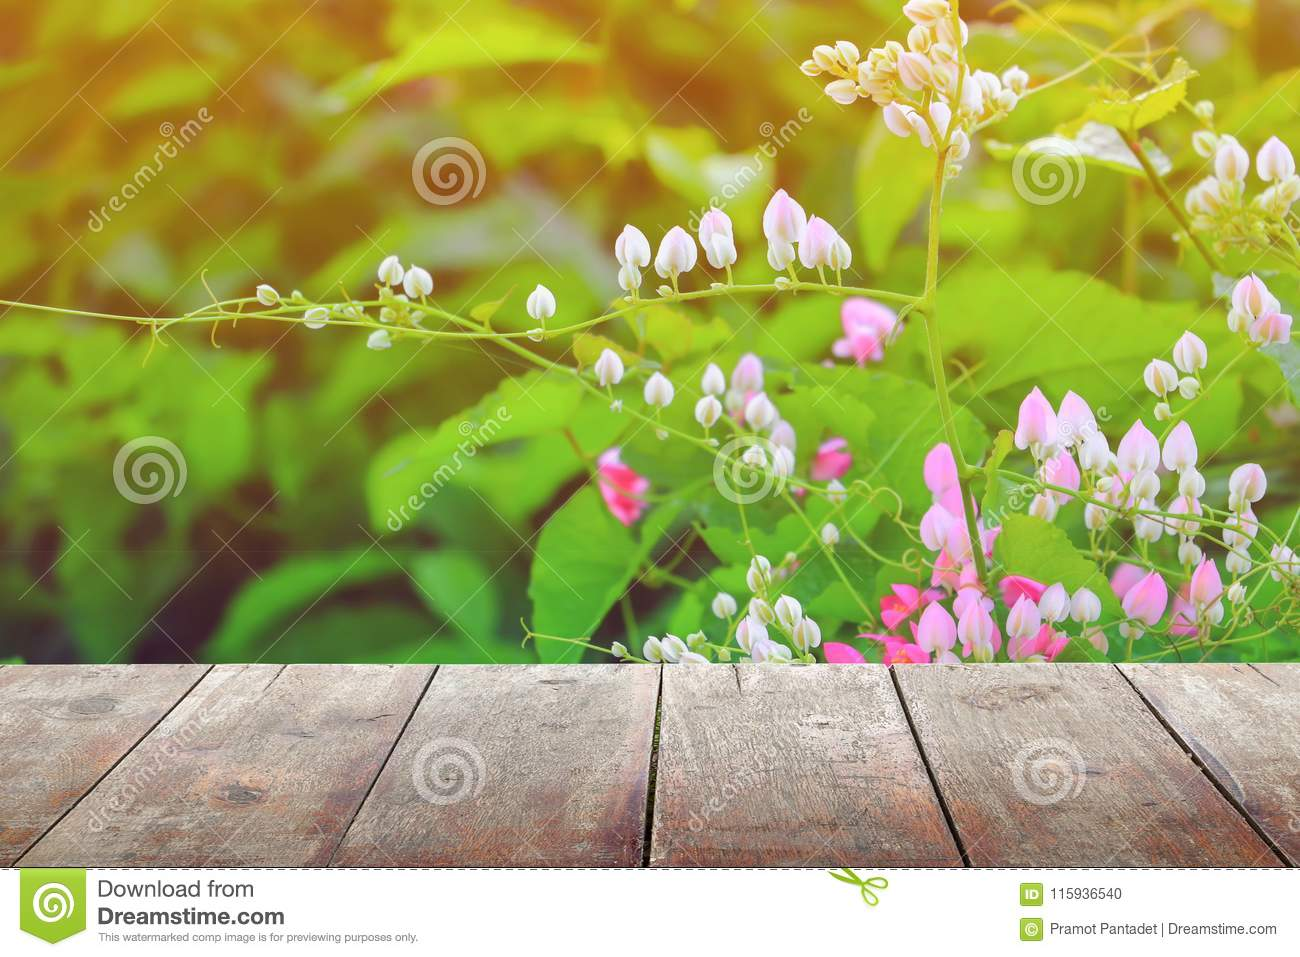 Empty wood texture board floor shelf with flower in nature background with copy space add text